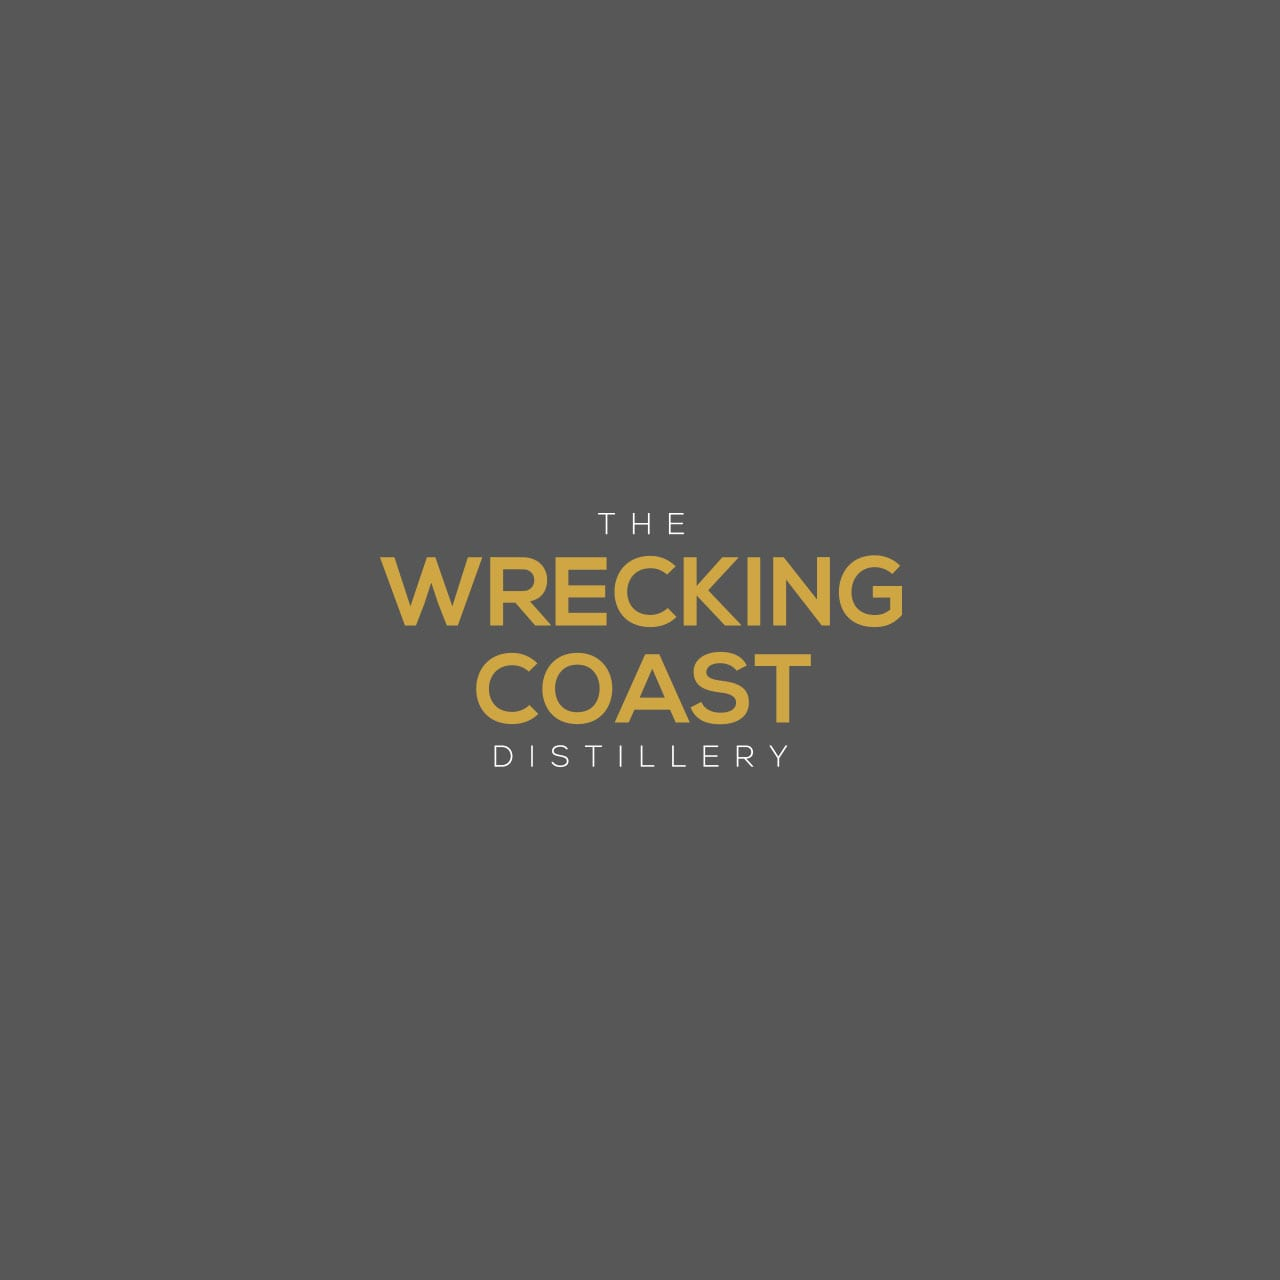 The Wrecking Coast Distillery brand logo on grey background